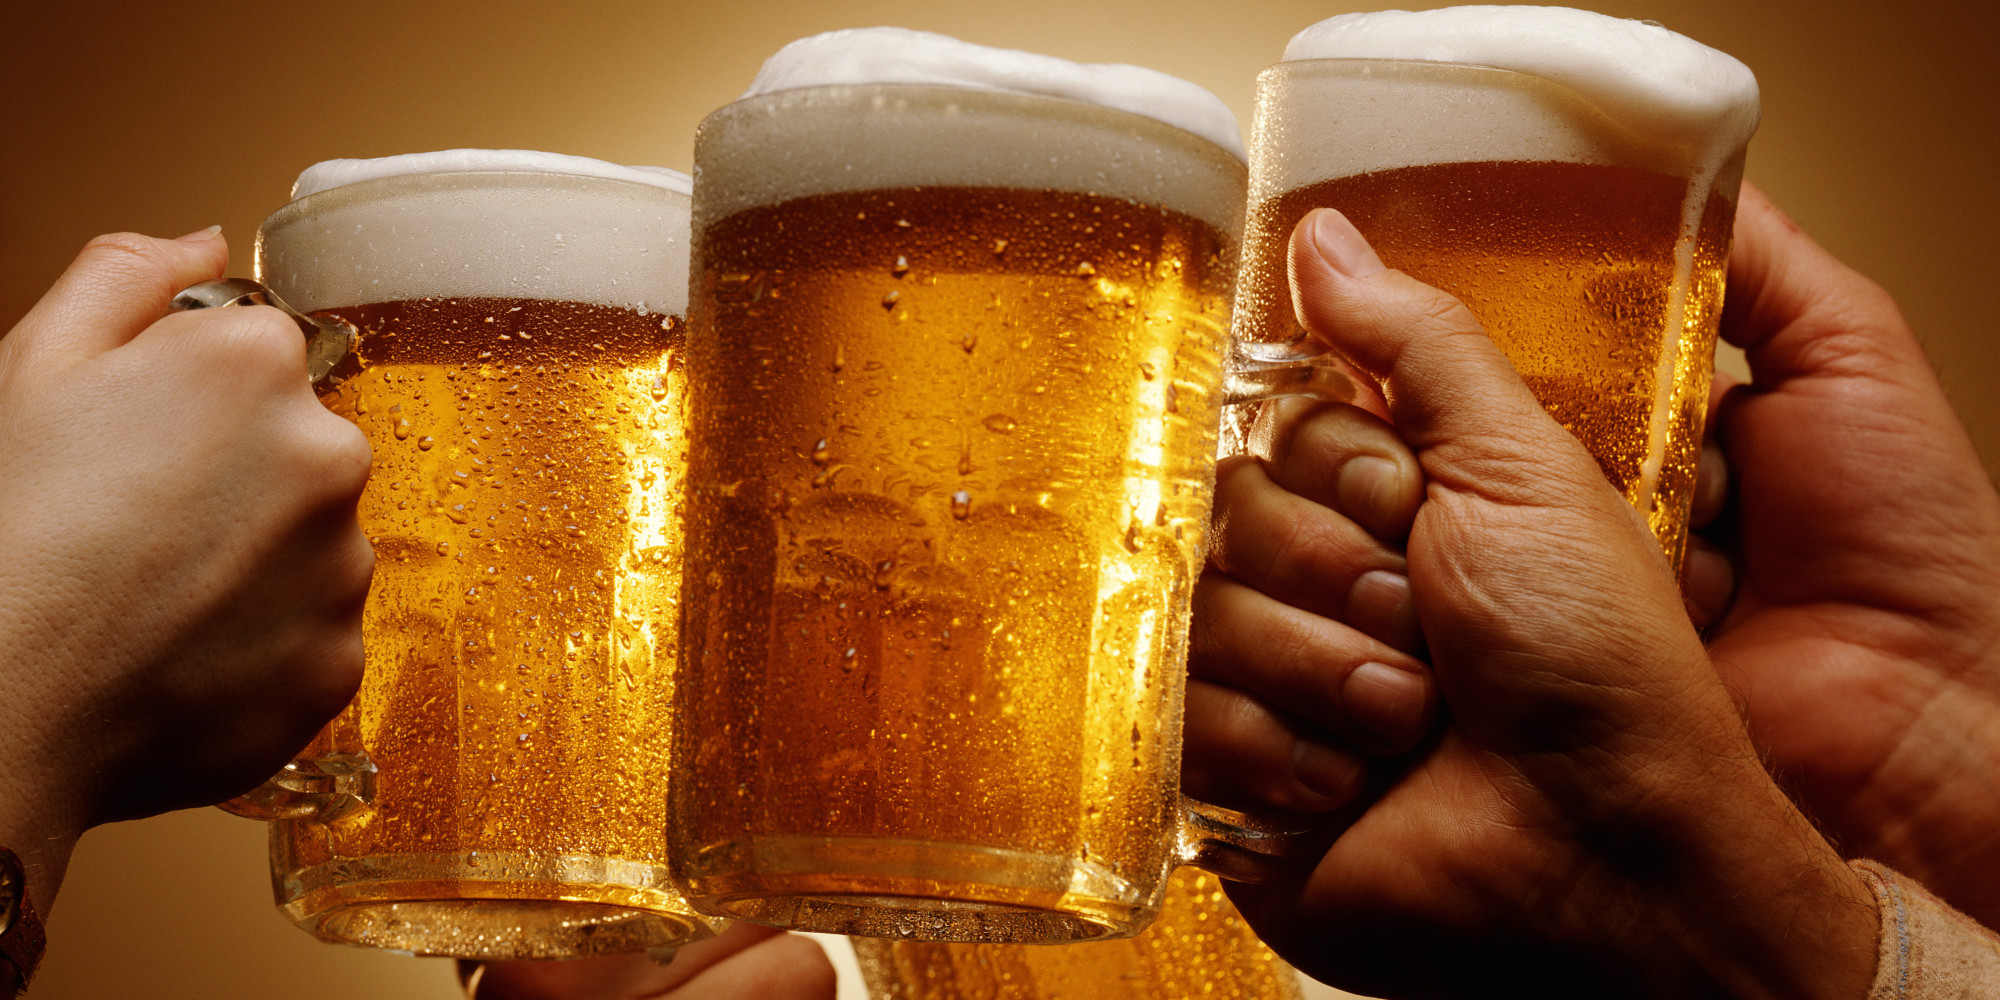 Backlash spurs Malaysia to ban beer brewing during Covid-19 lockdown